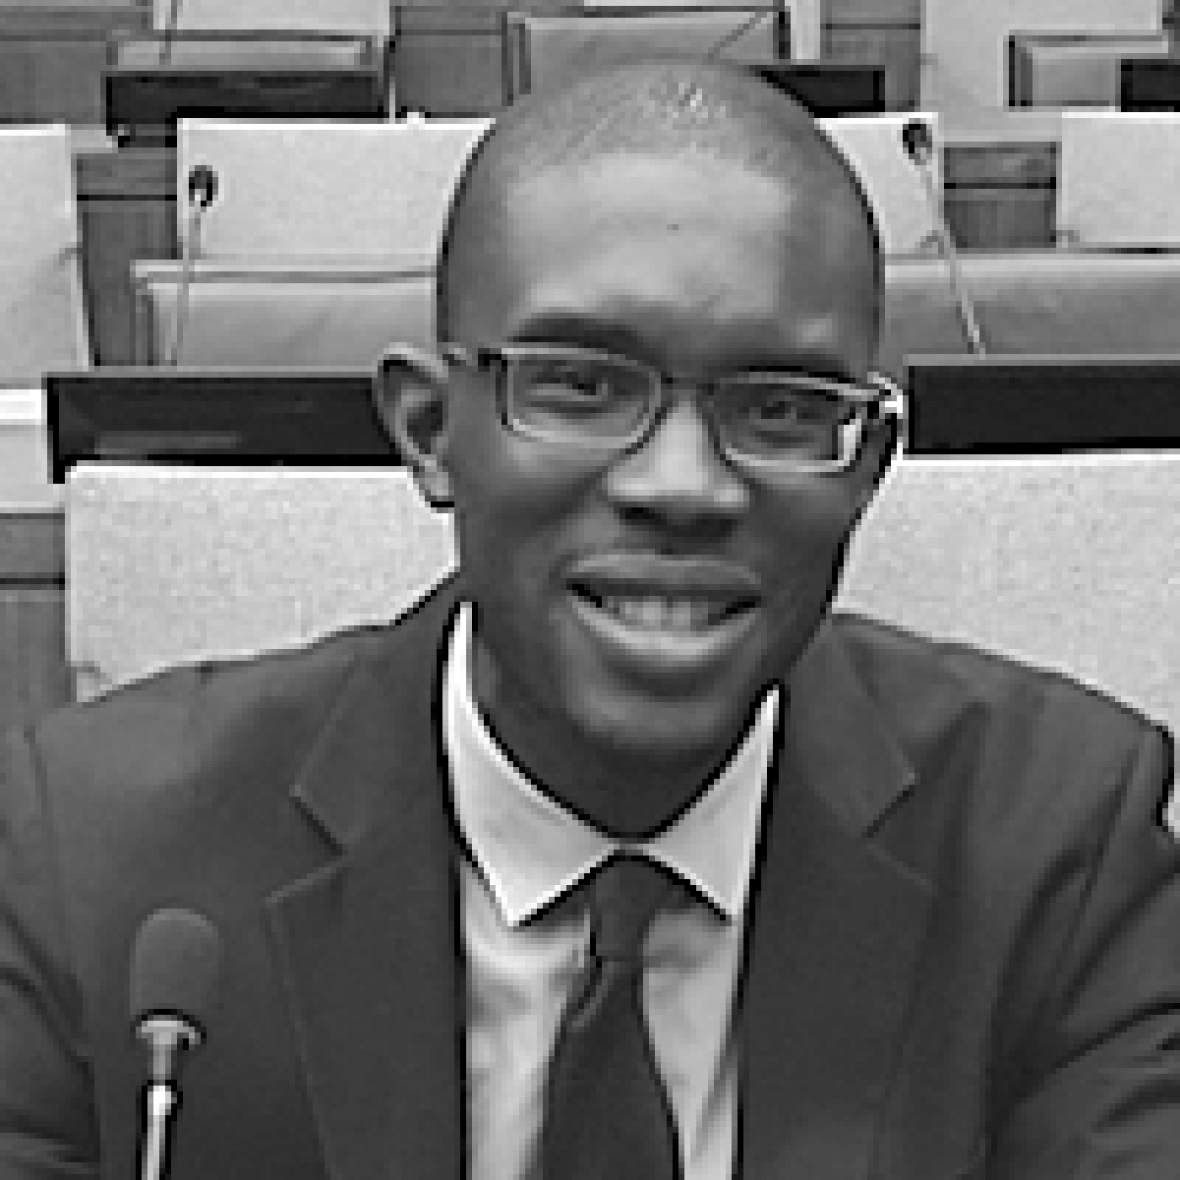 head and shoulders of Watson Fellow Lincoln Ajoku smiling at camera, wearing a suit and tie, in black and white